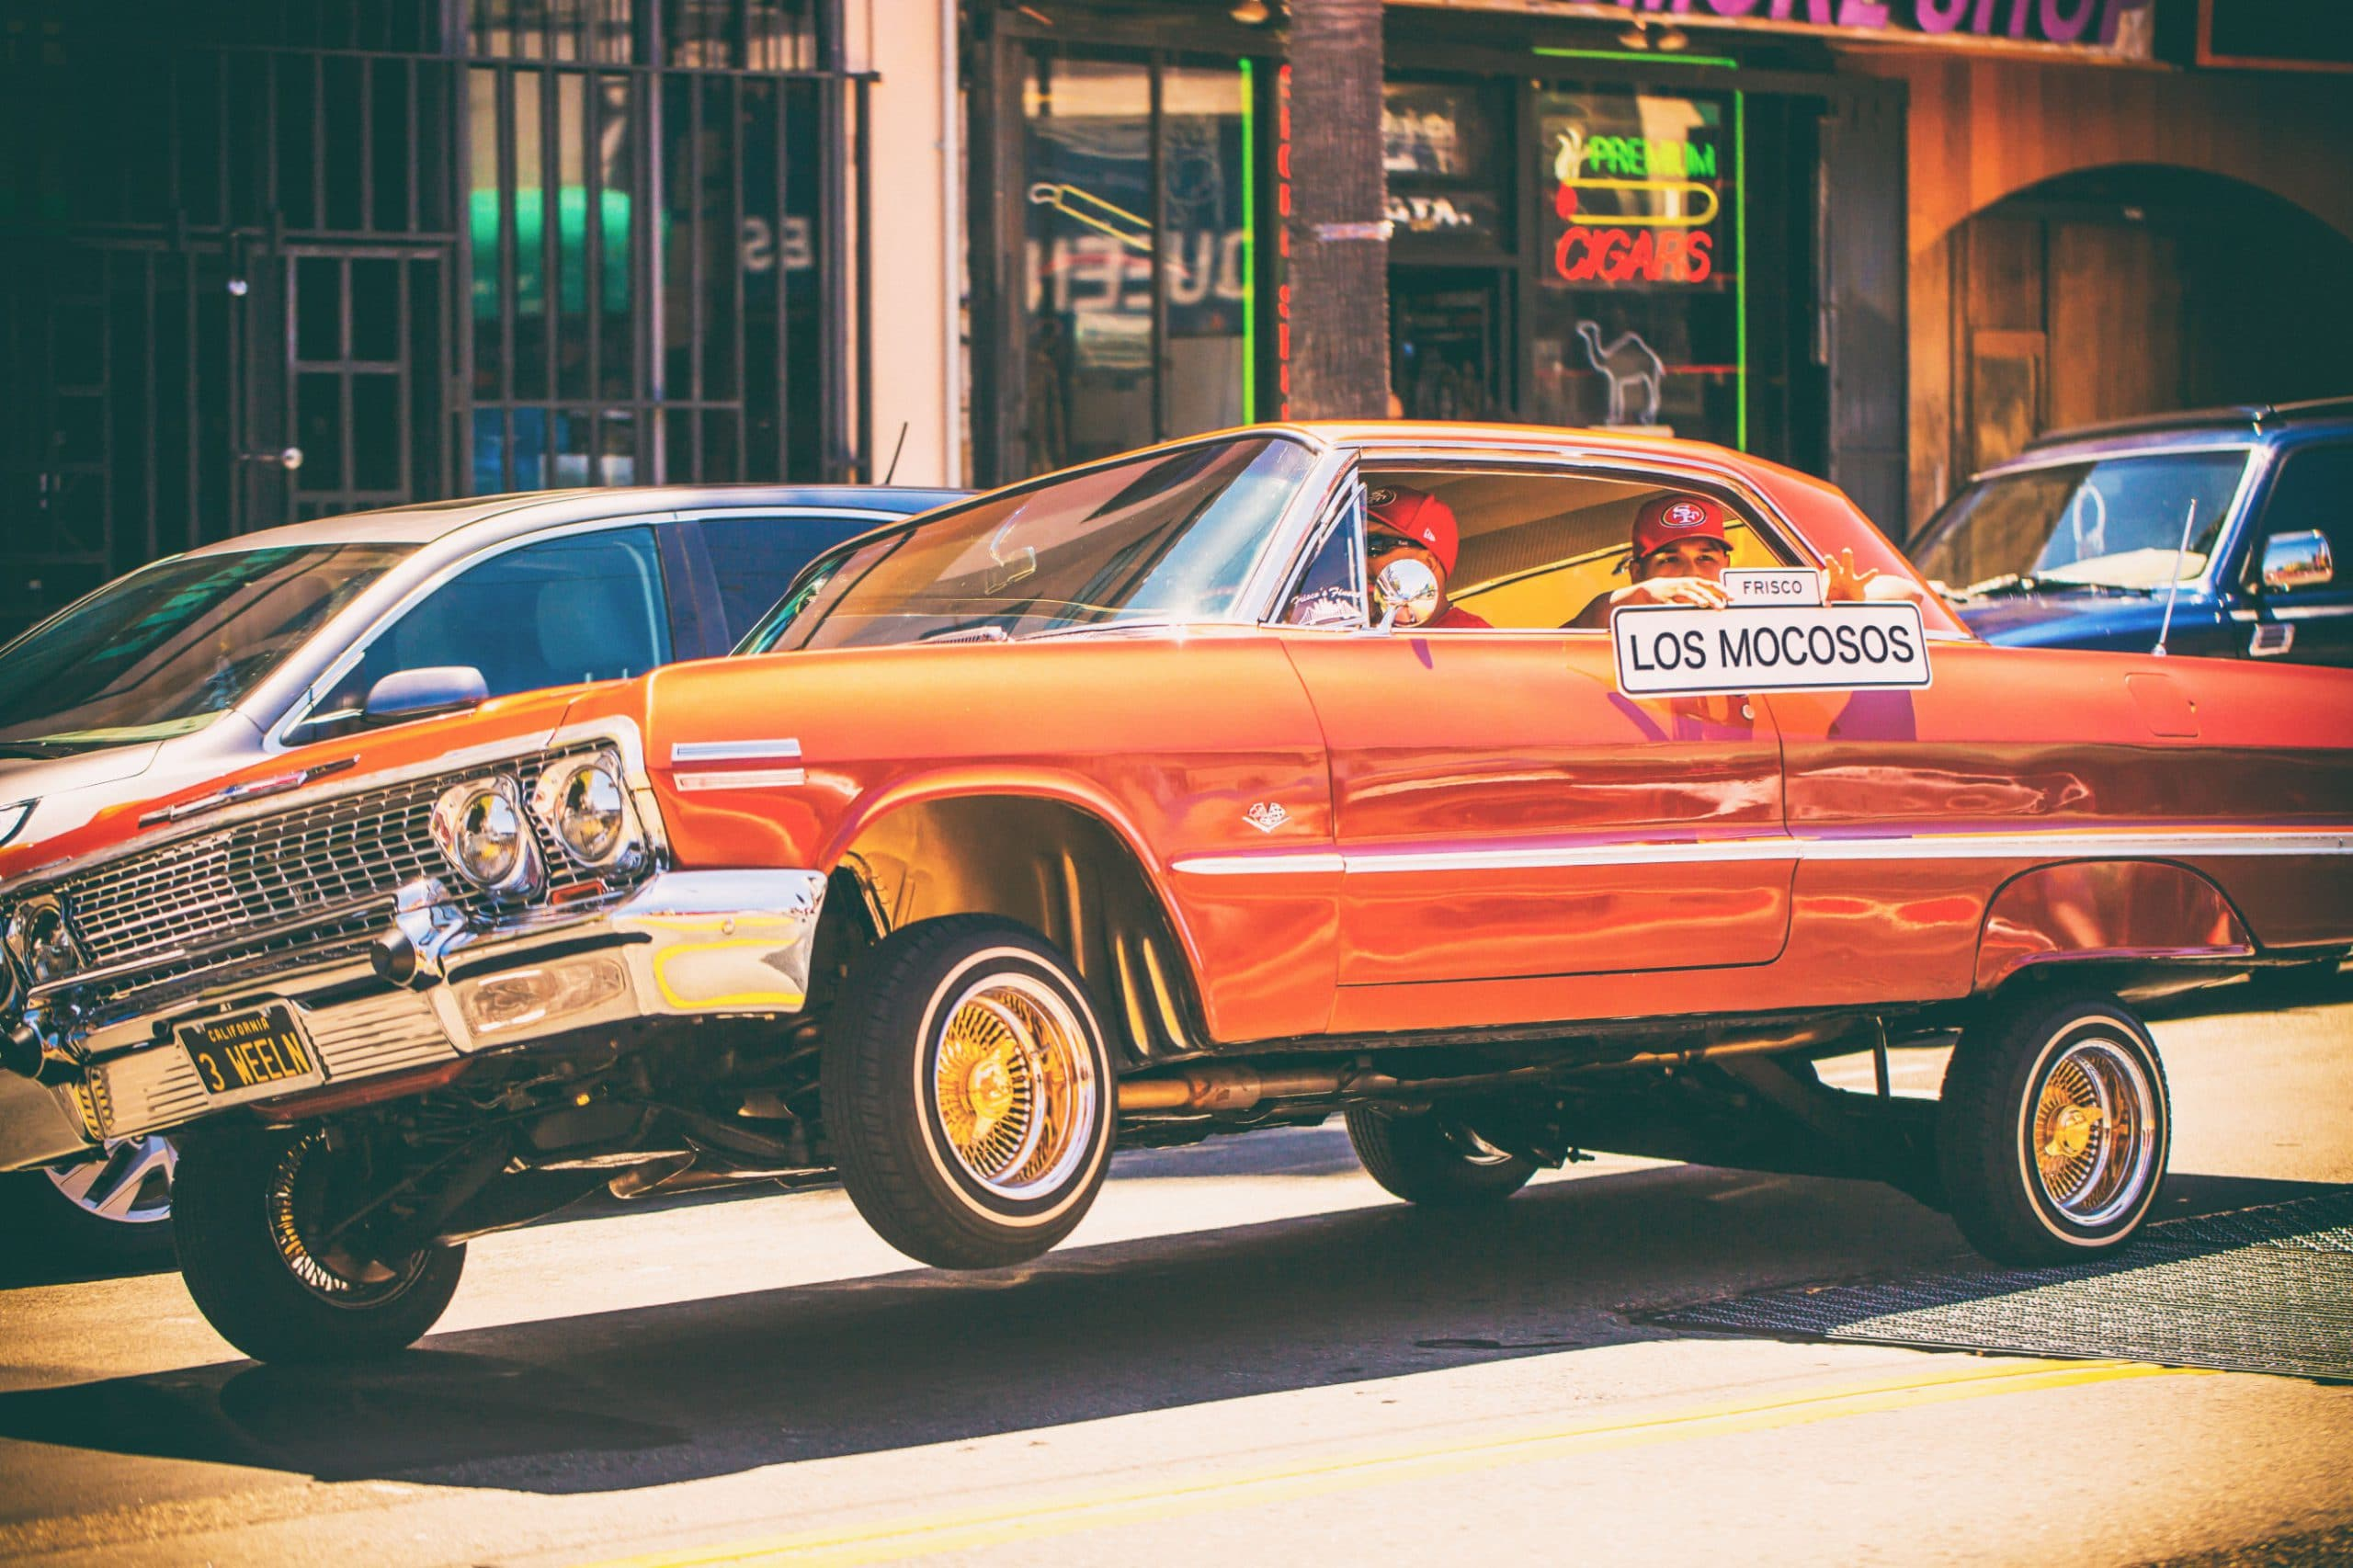 Lowriders in the Mission